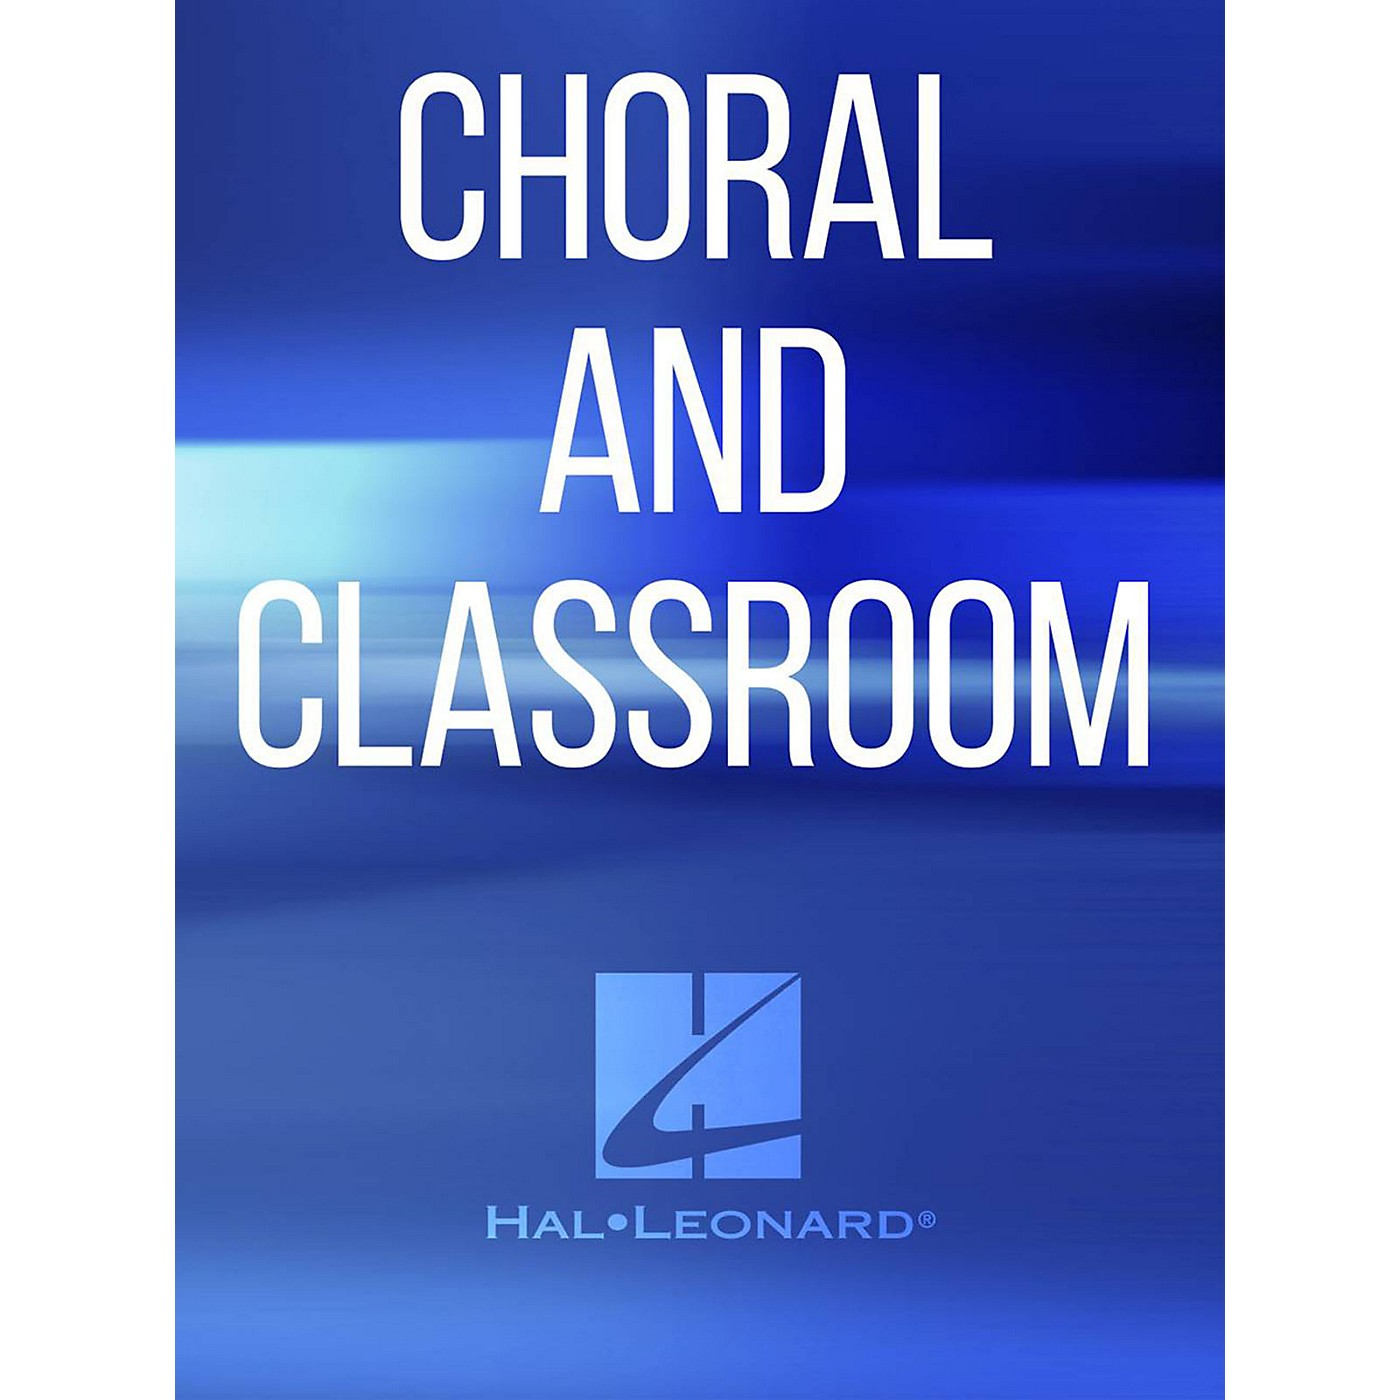 Hal Leonard Almighty and Everlasting God SATB Composed by William Lock thumbnail